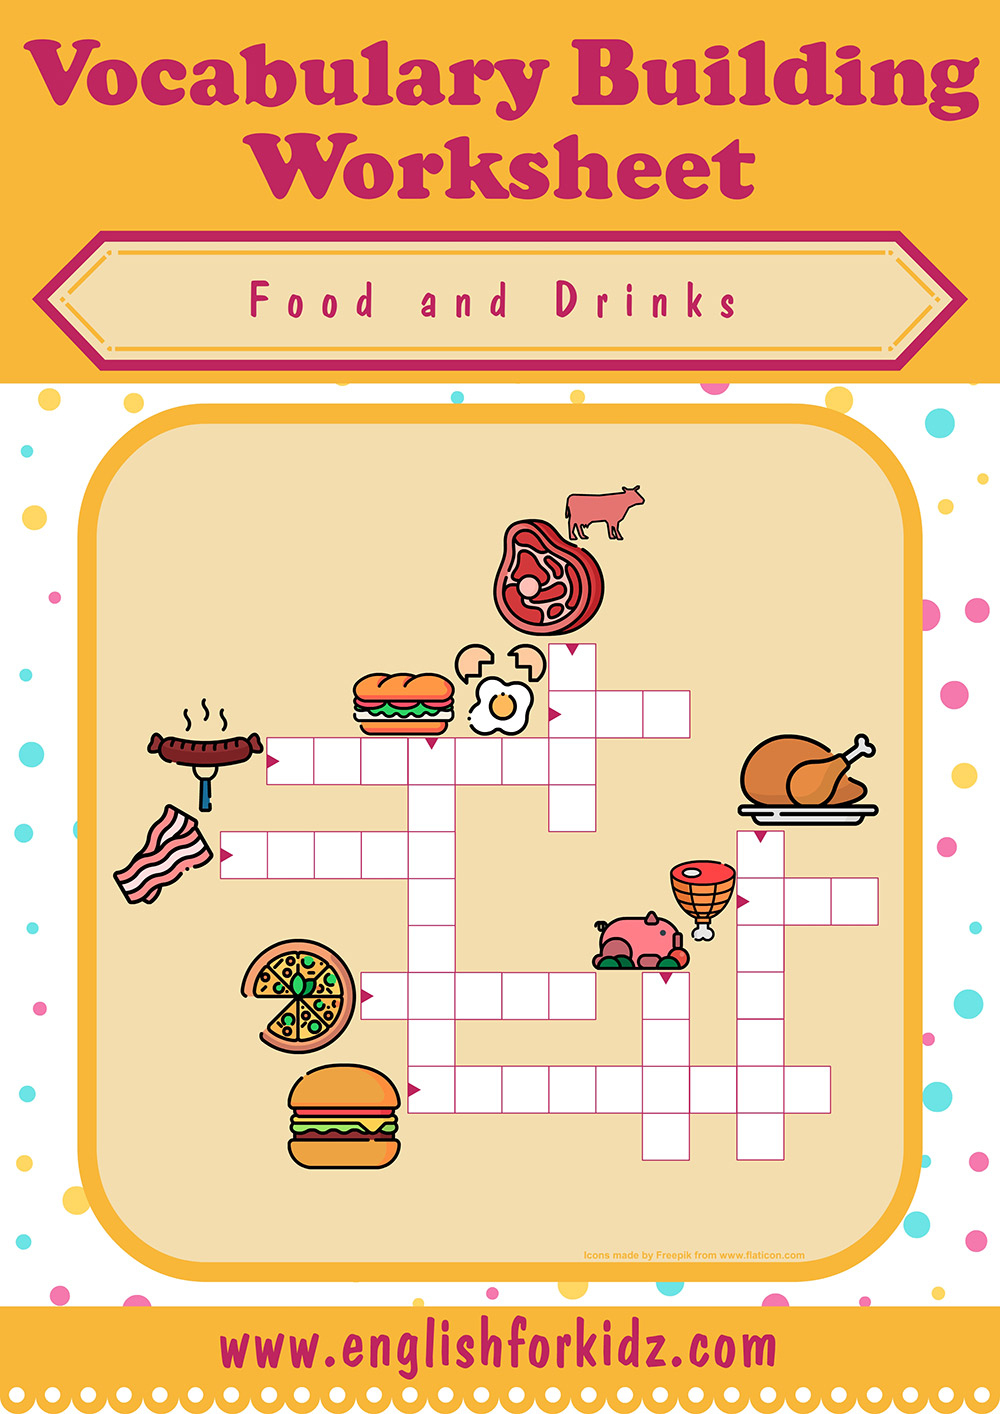 Food And Drinks Crossword Puzzles - Printable Crossword Puzzles May 2019